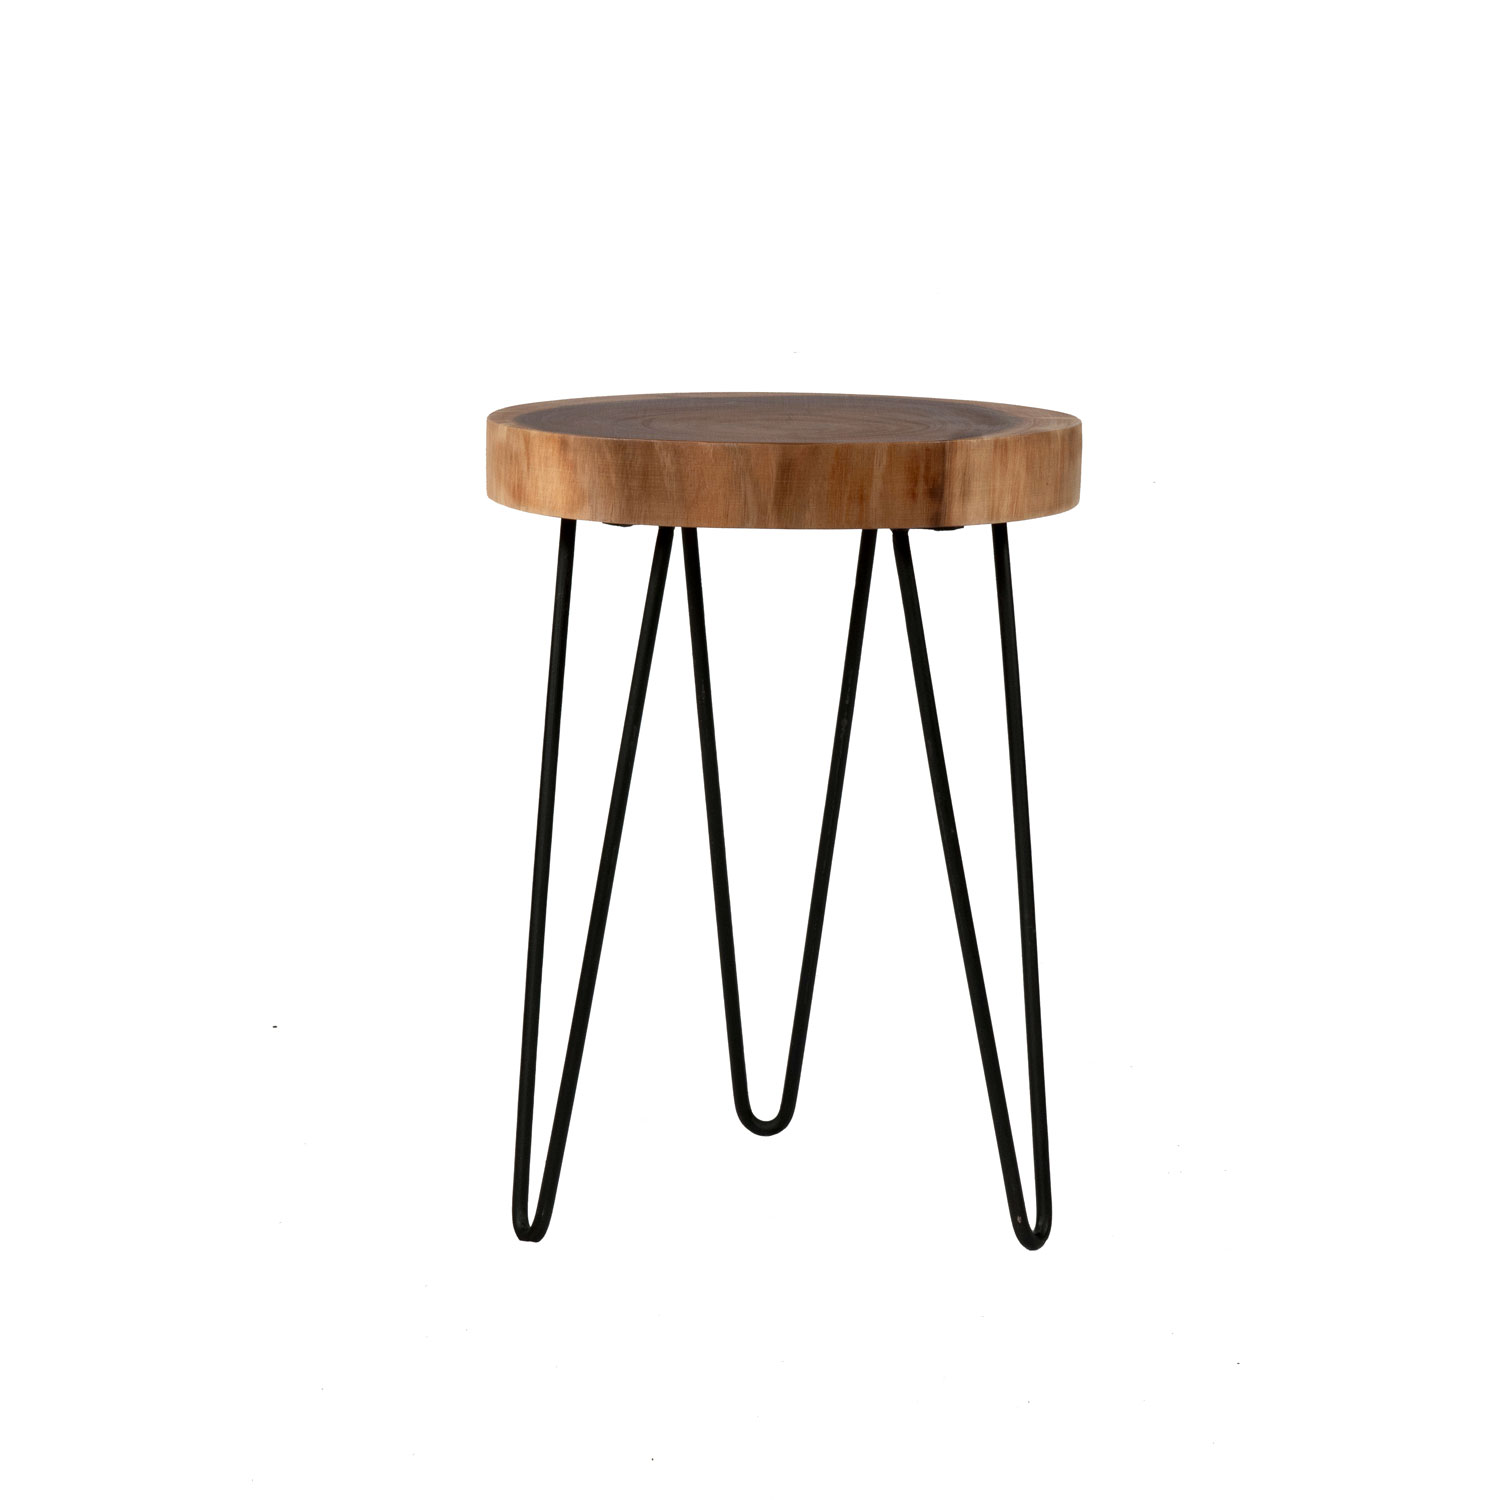 east main laredo brown teakwood round accent table wood hover zoom entry for small spaces desk chairs natural large white bedside threshold side end with storage living room lamp